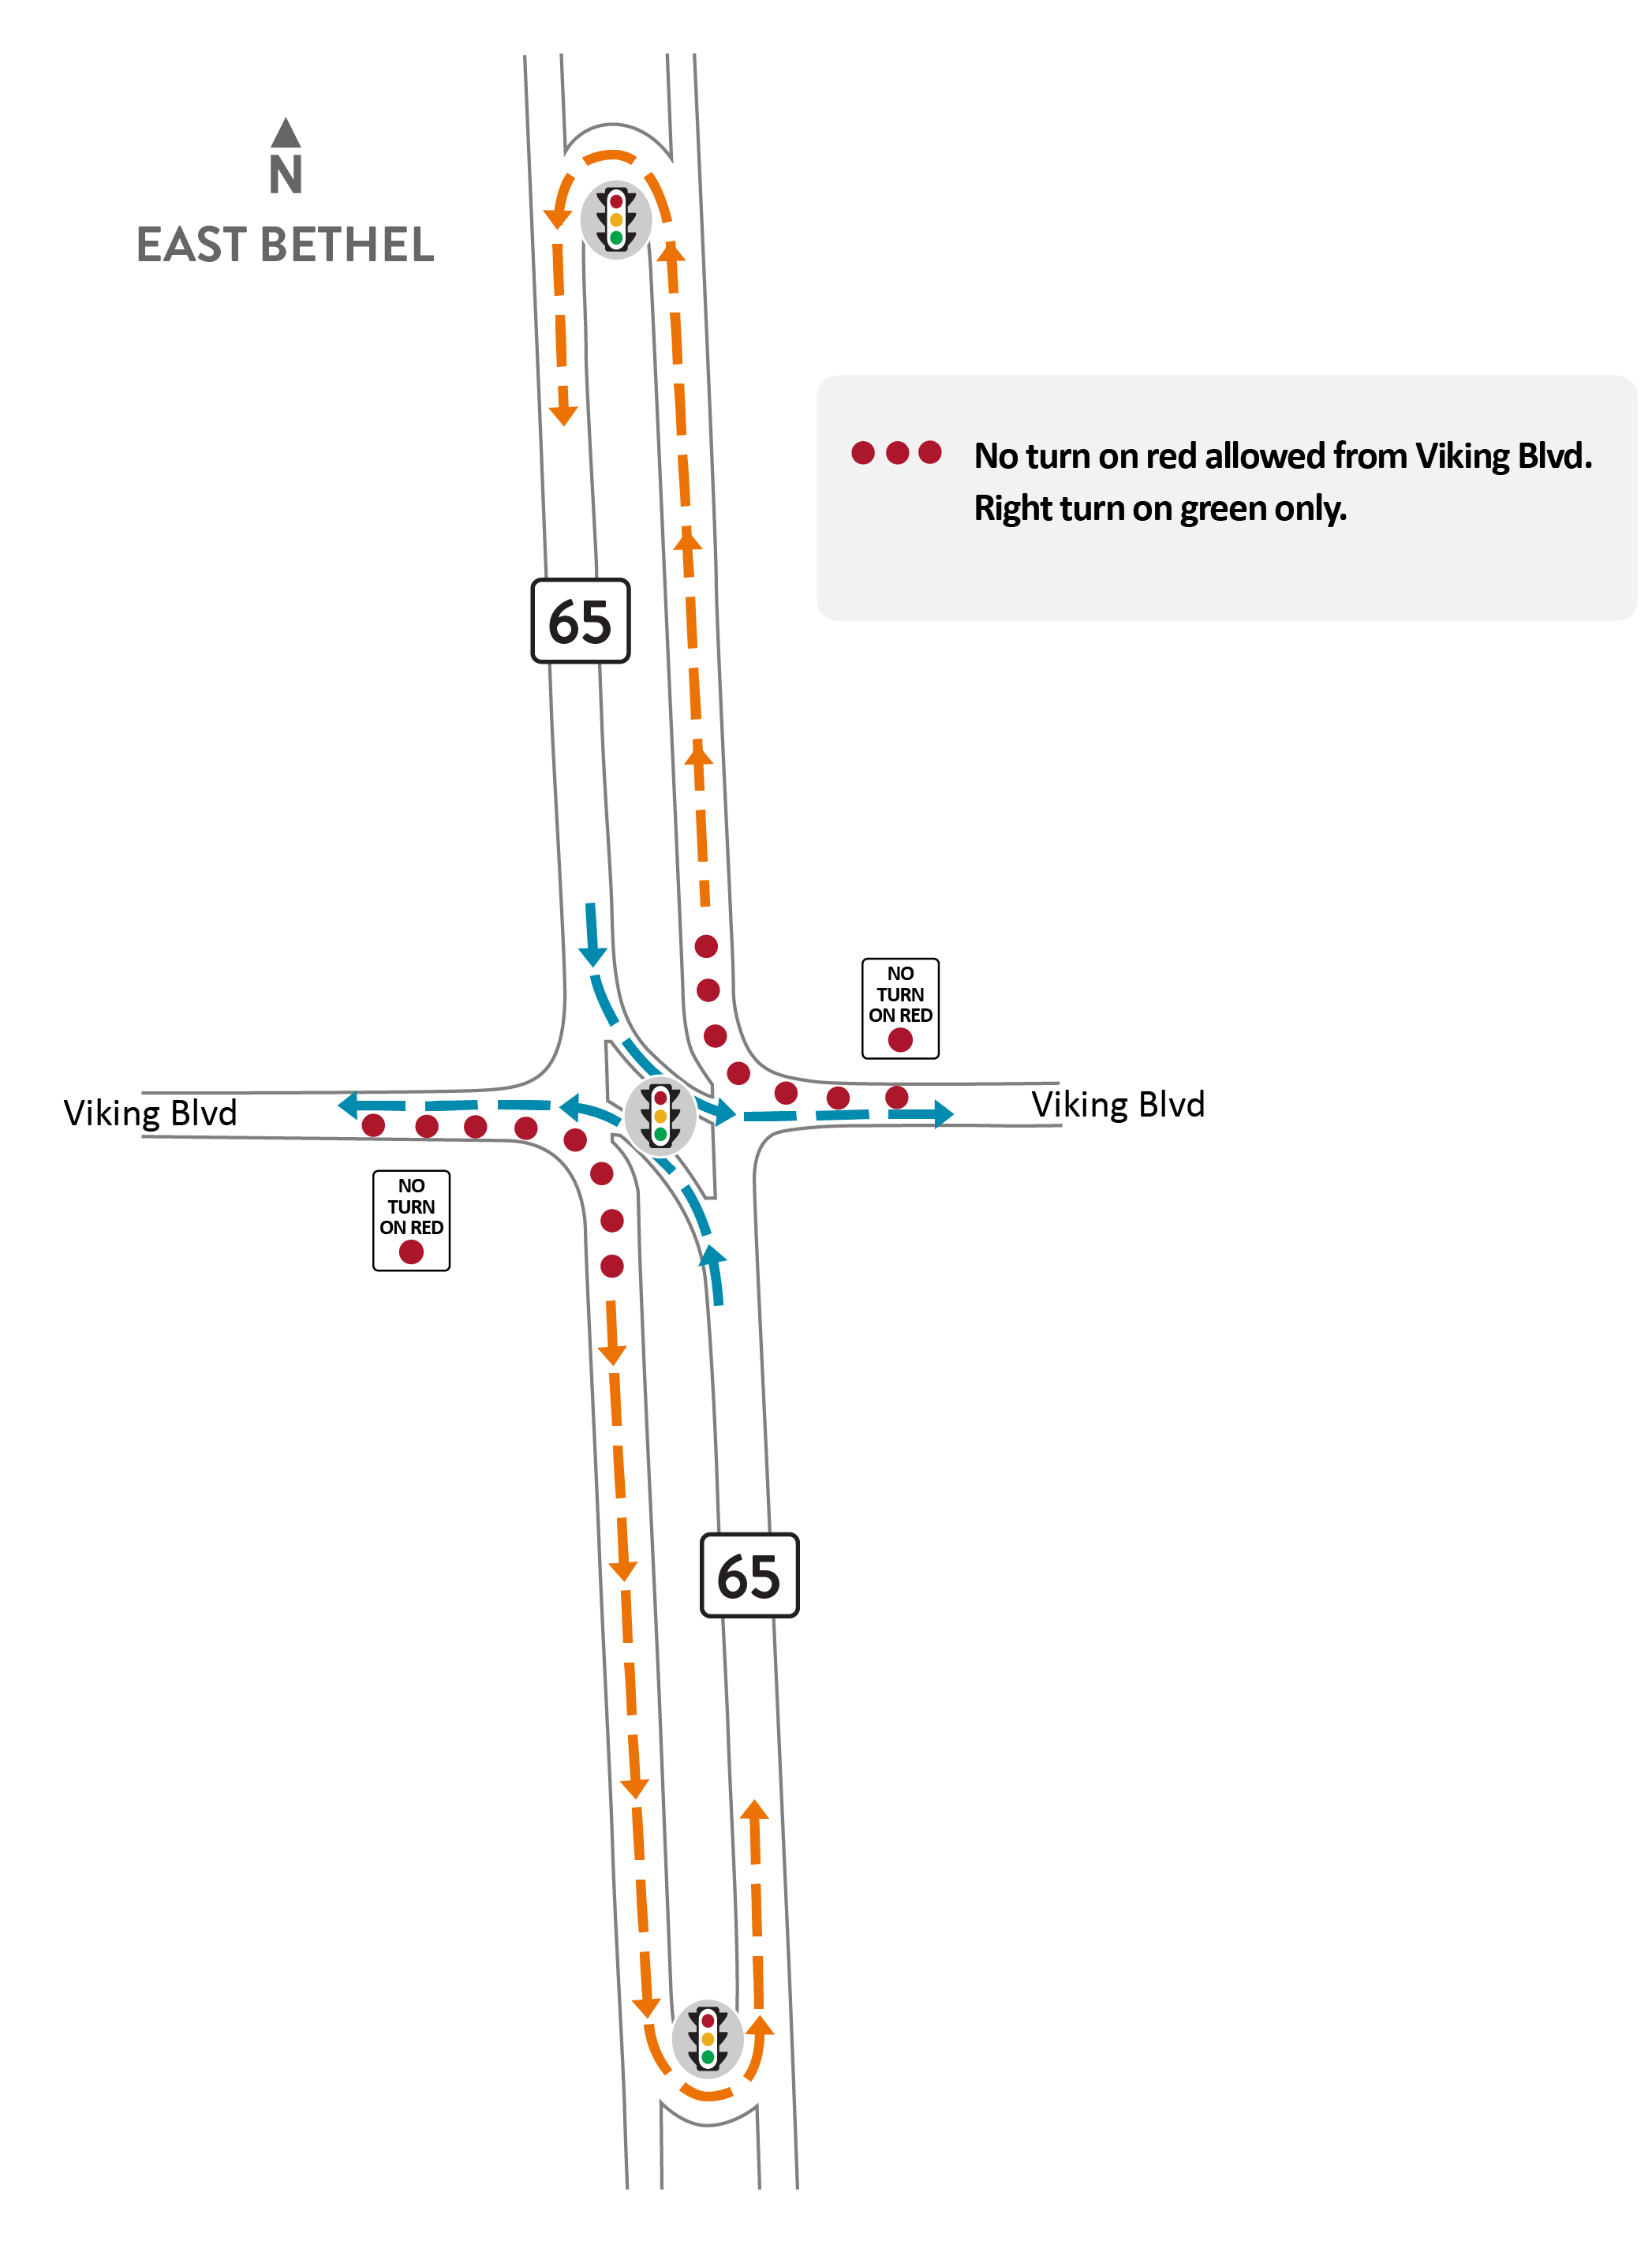 We see a reduced conflict intersection, or J-turn intersection, at highway 65 and Viking Boulevard with no right turn on red light from Viking Boulevard to highway 65.